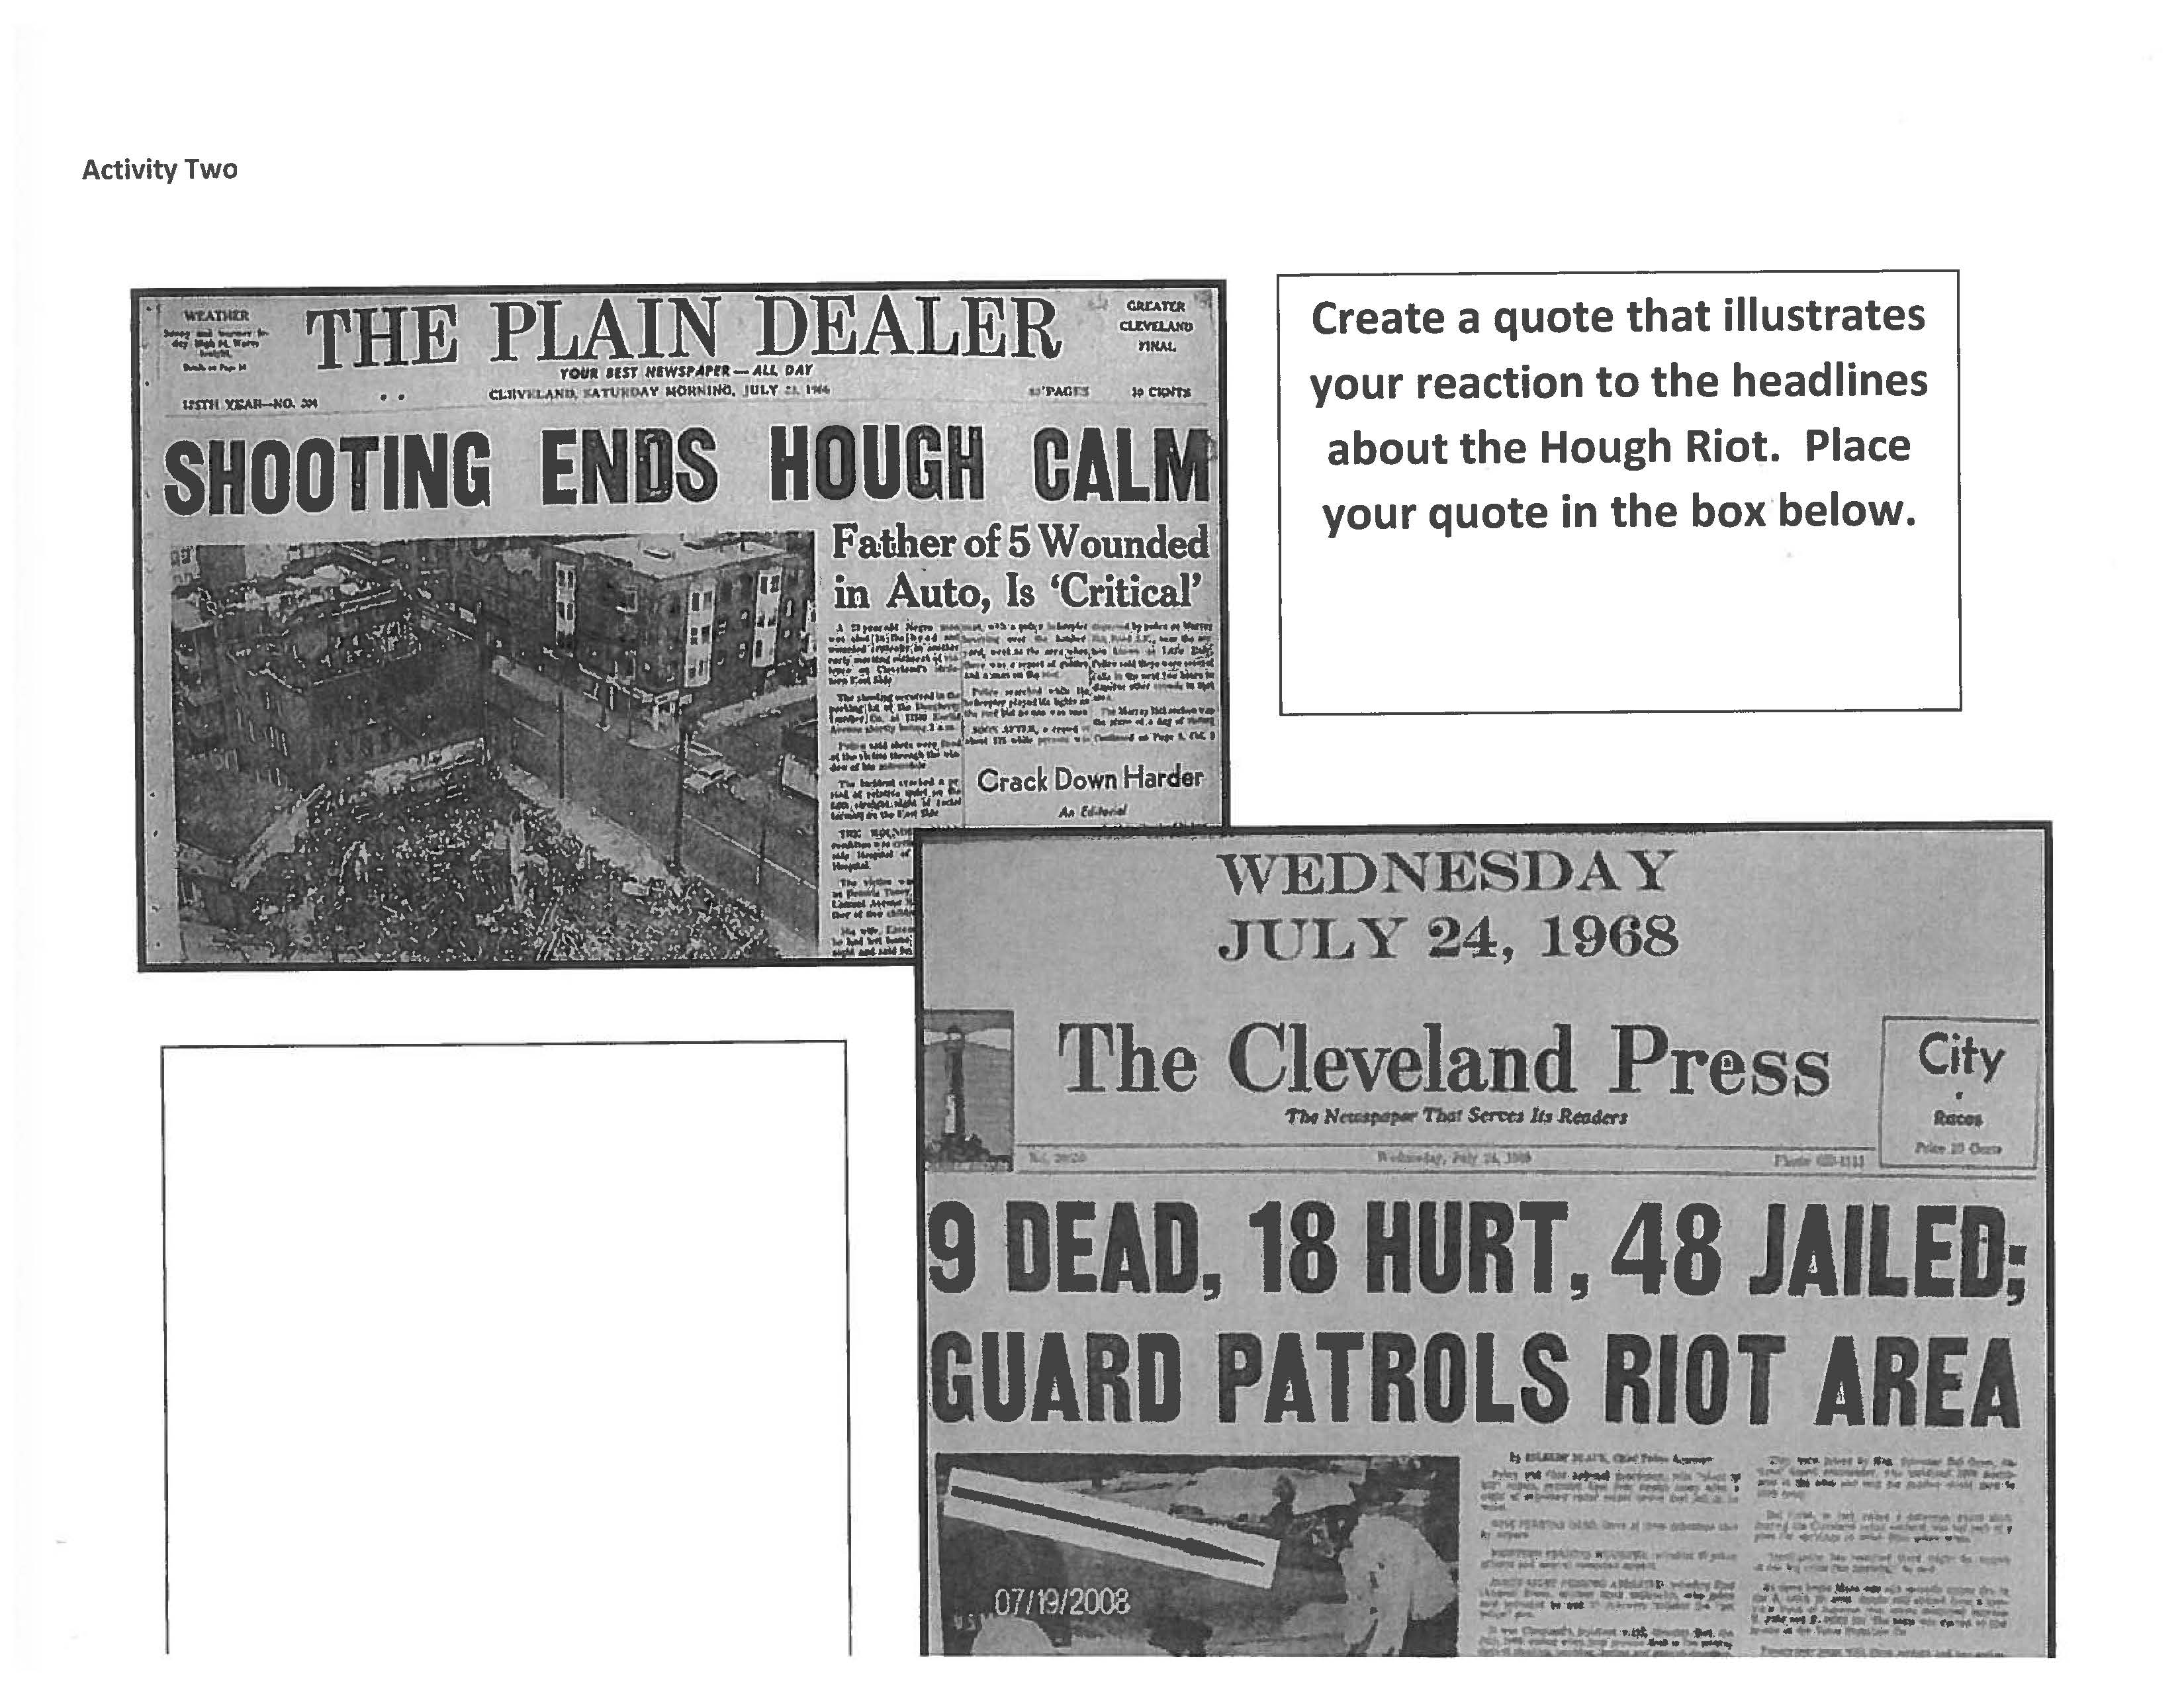 Caption: Gadison's lesson asks students to react to newspaper headlines from the Hough and Glenville riots.